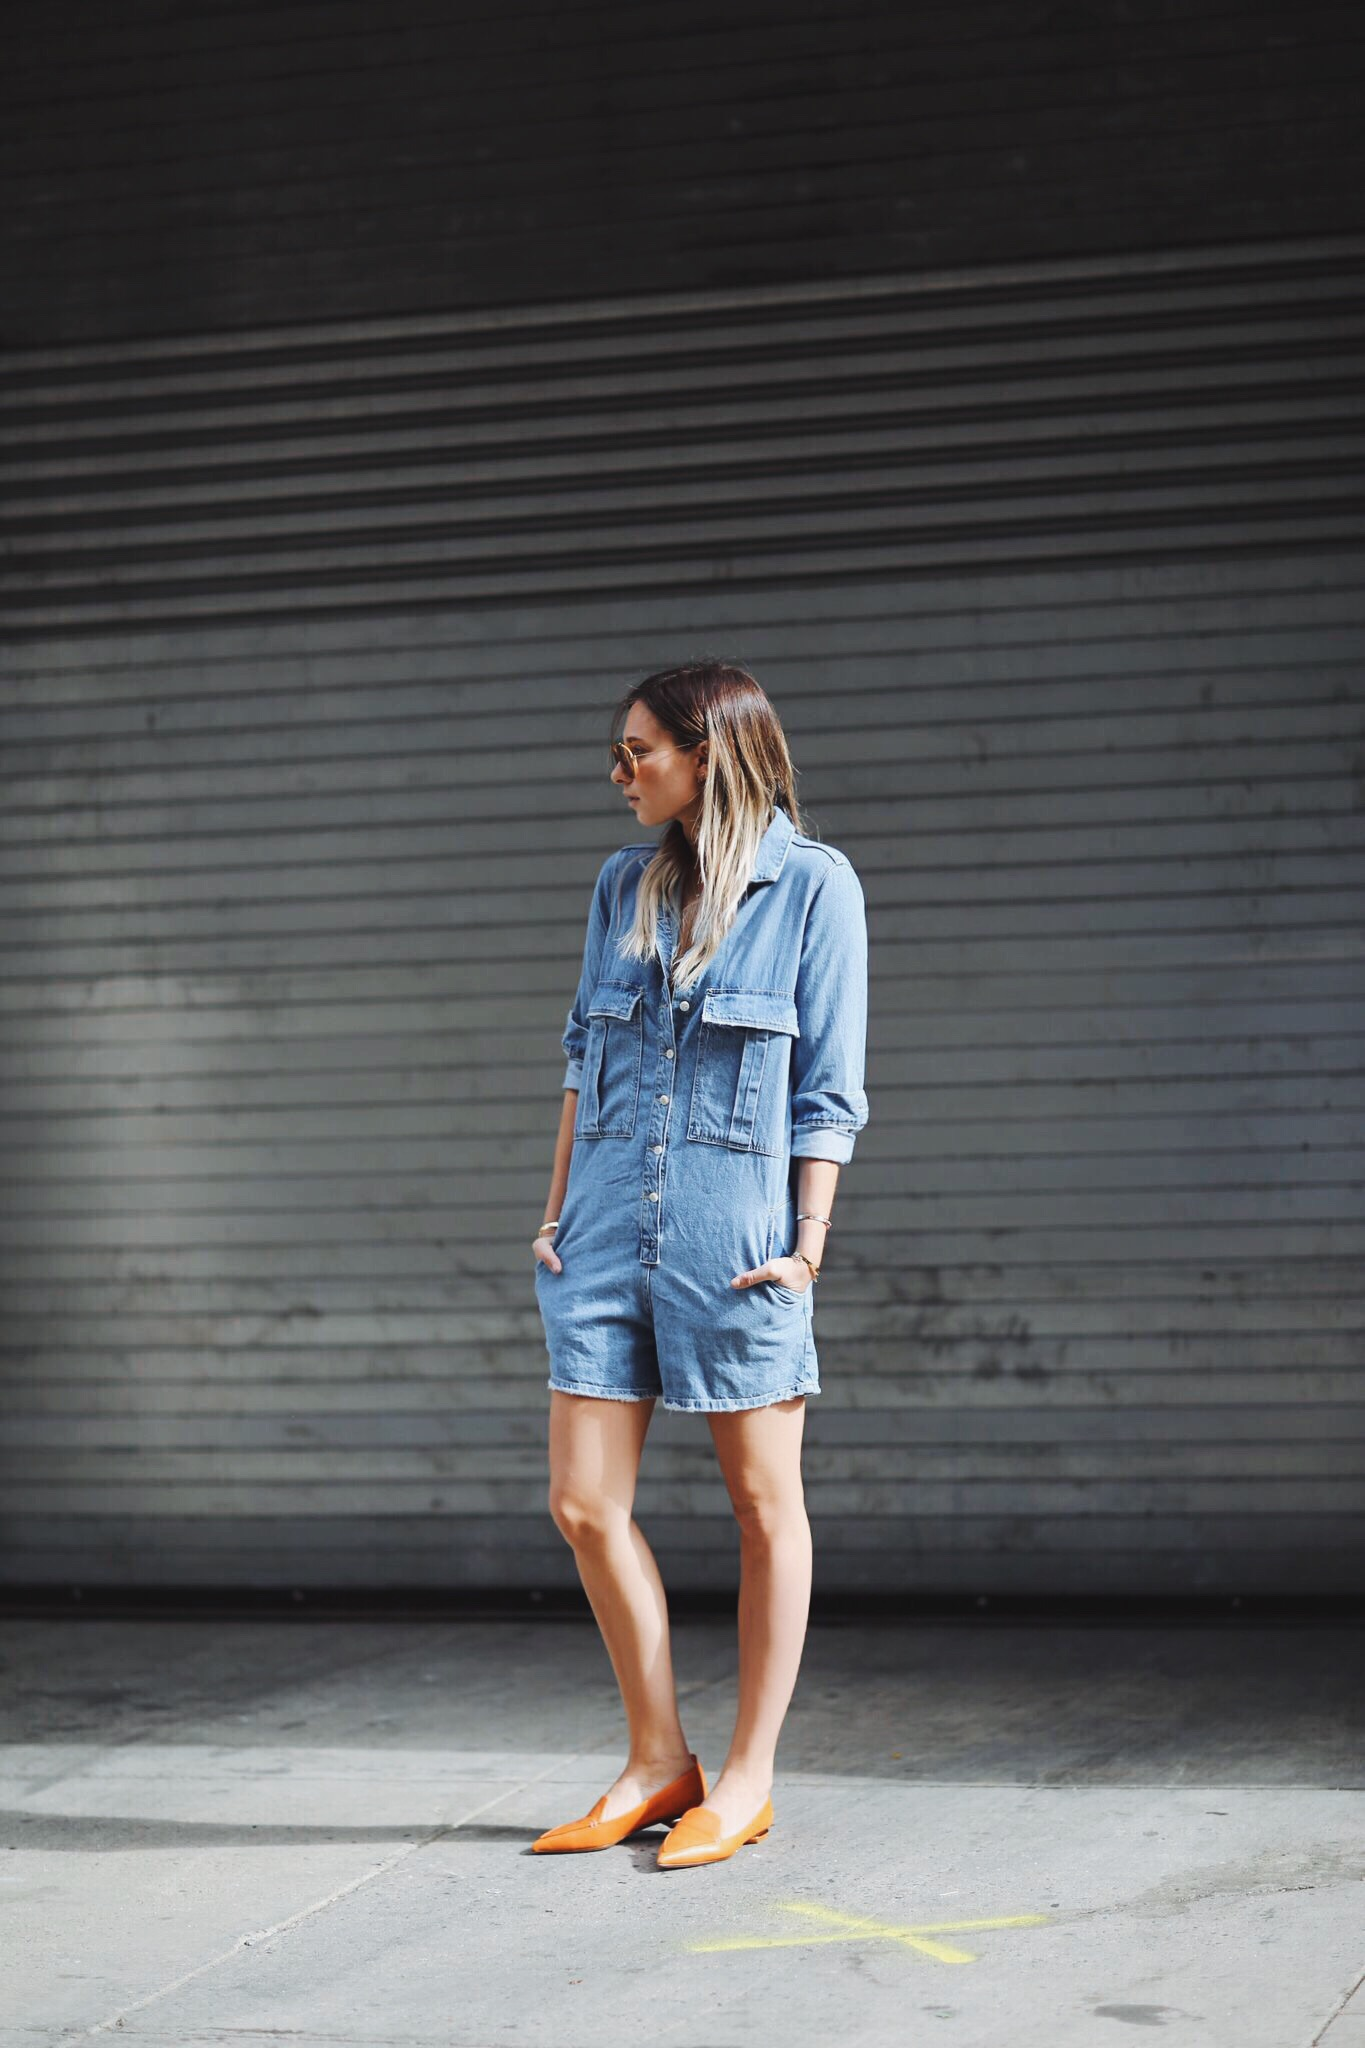 Street Style: Danielle is wearing a denim jumpsuit with beige pumps